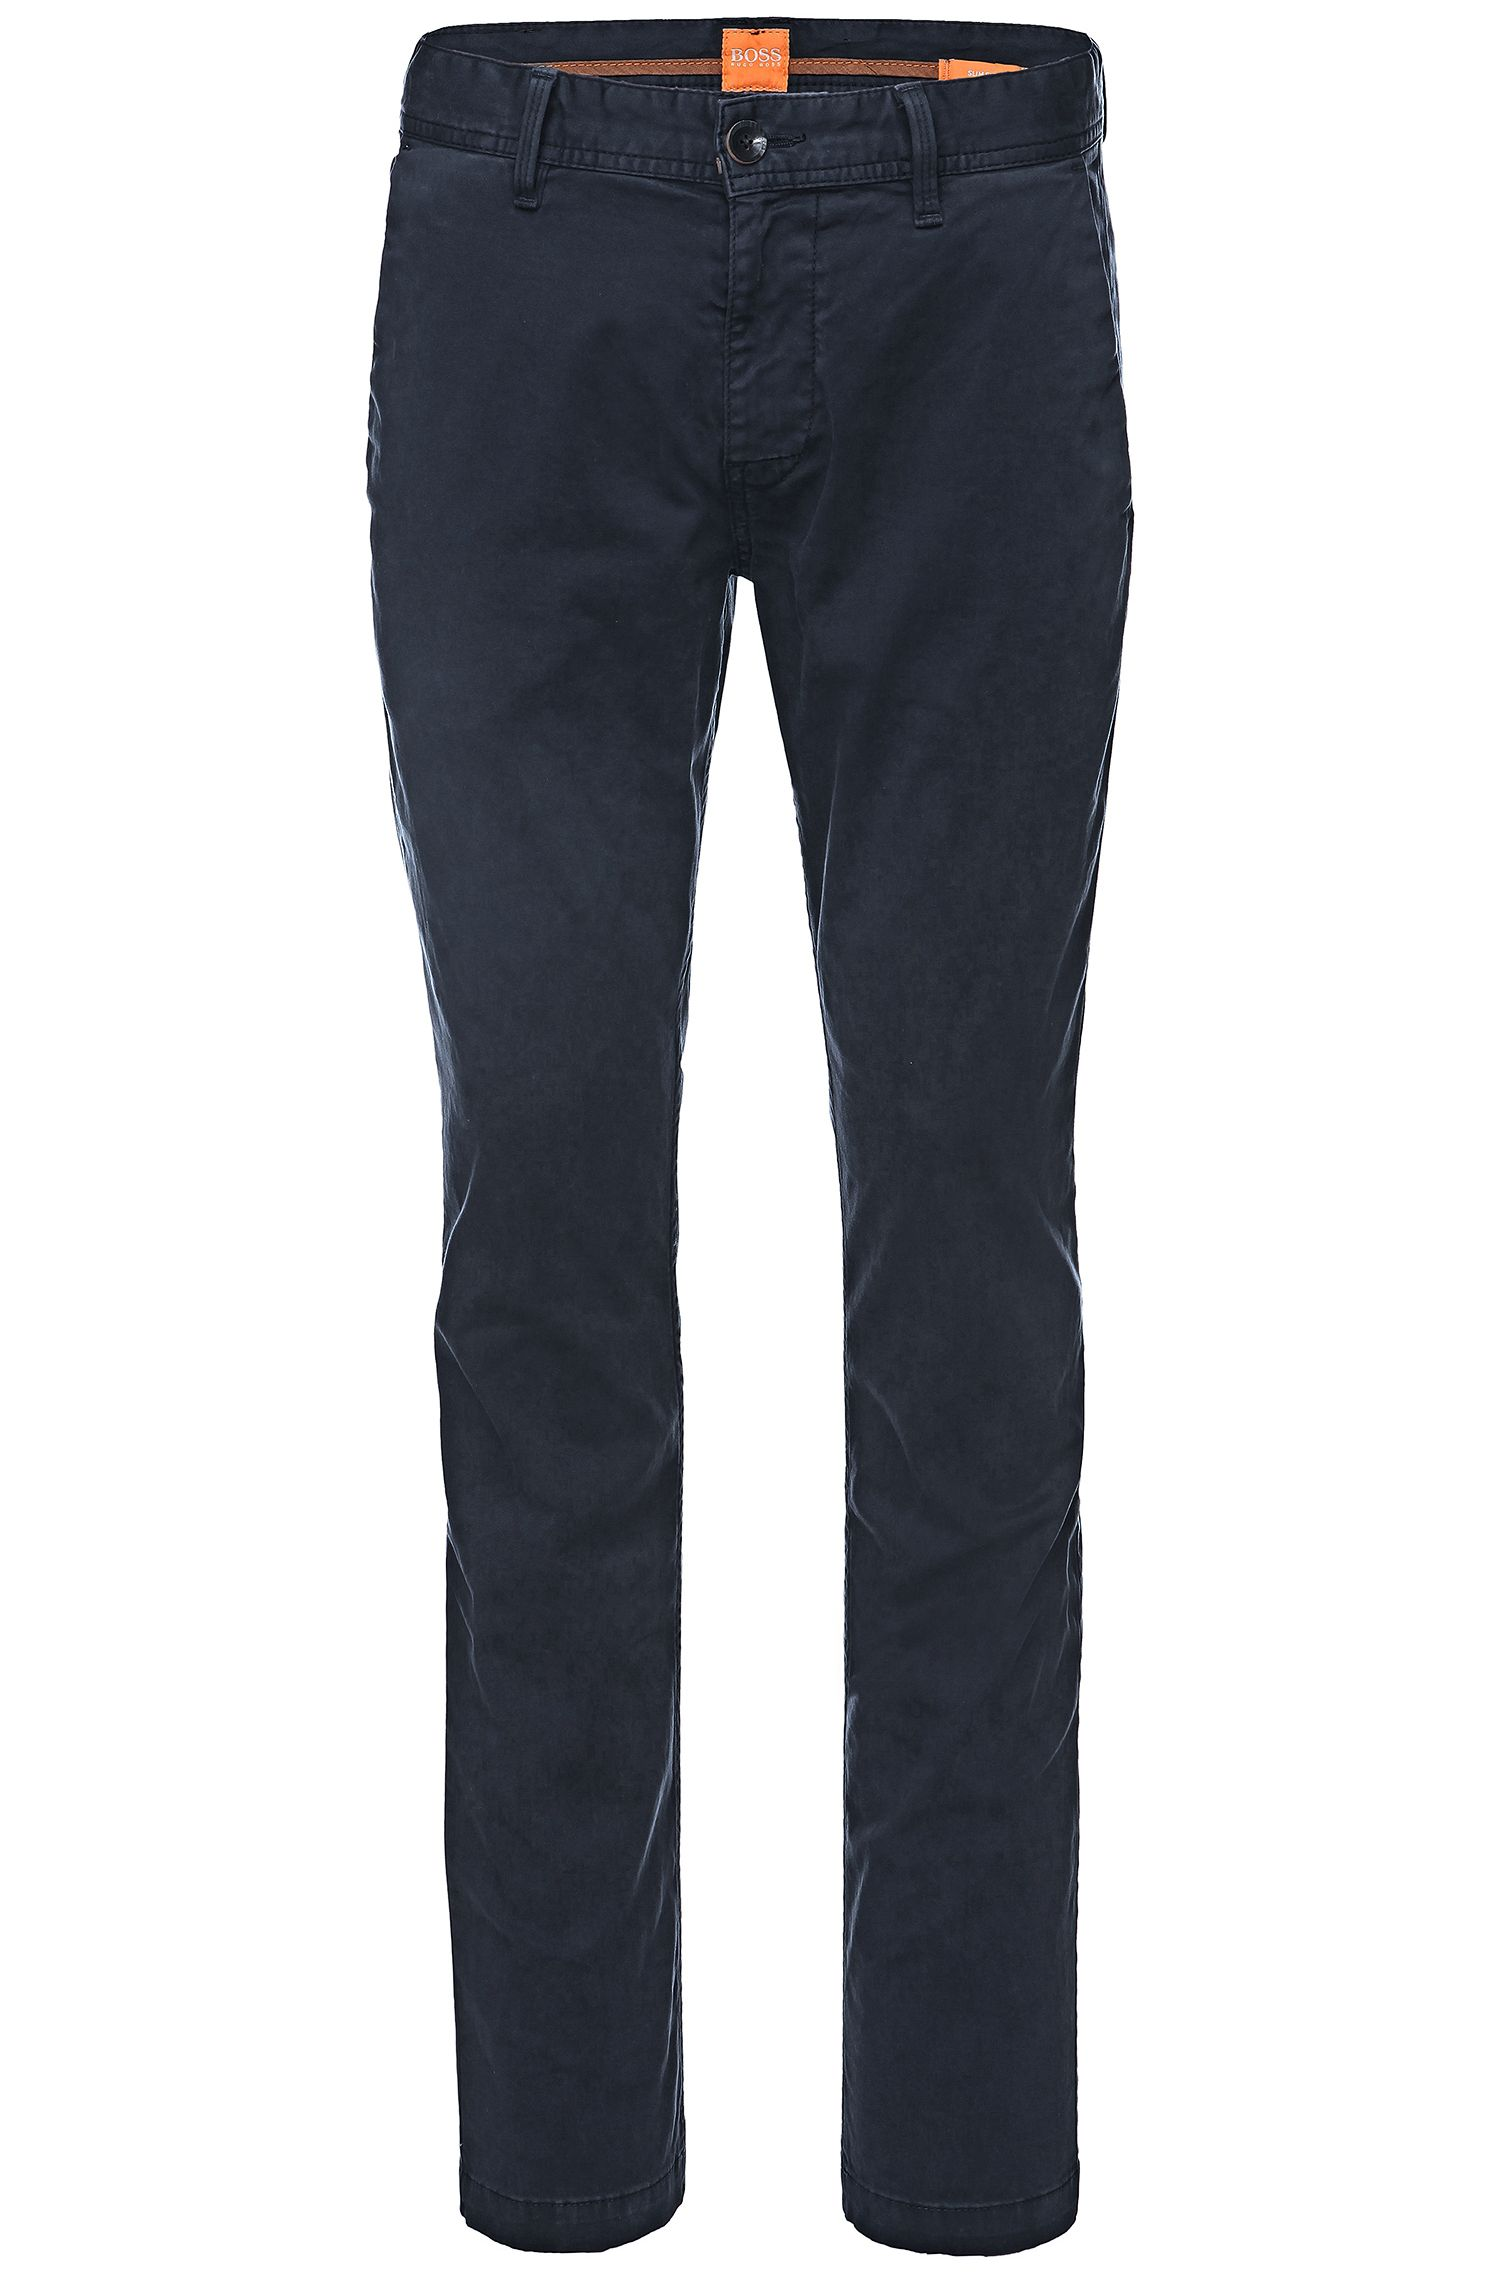 Stretch Cotton Chino Pants, Slim Fit | Schino Slim D, Dark Blue